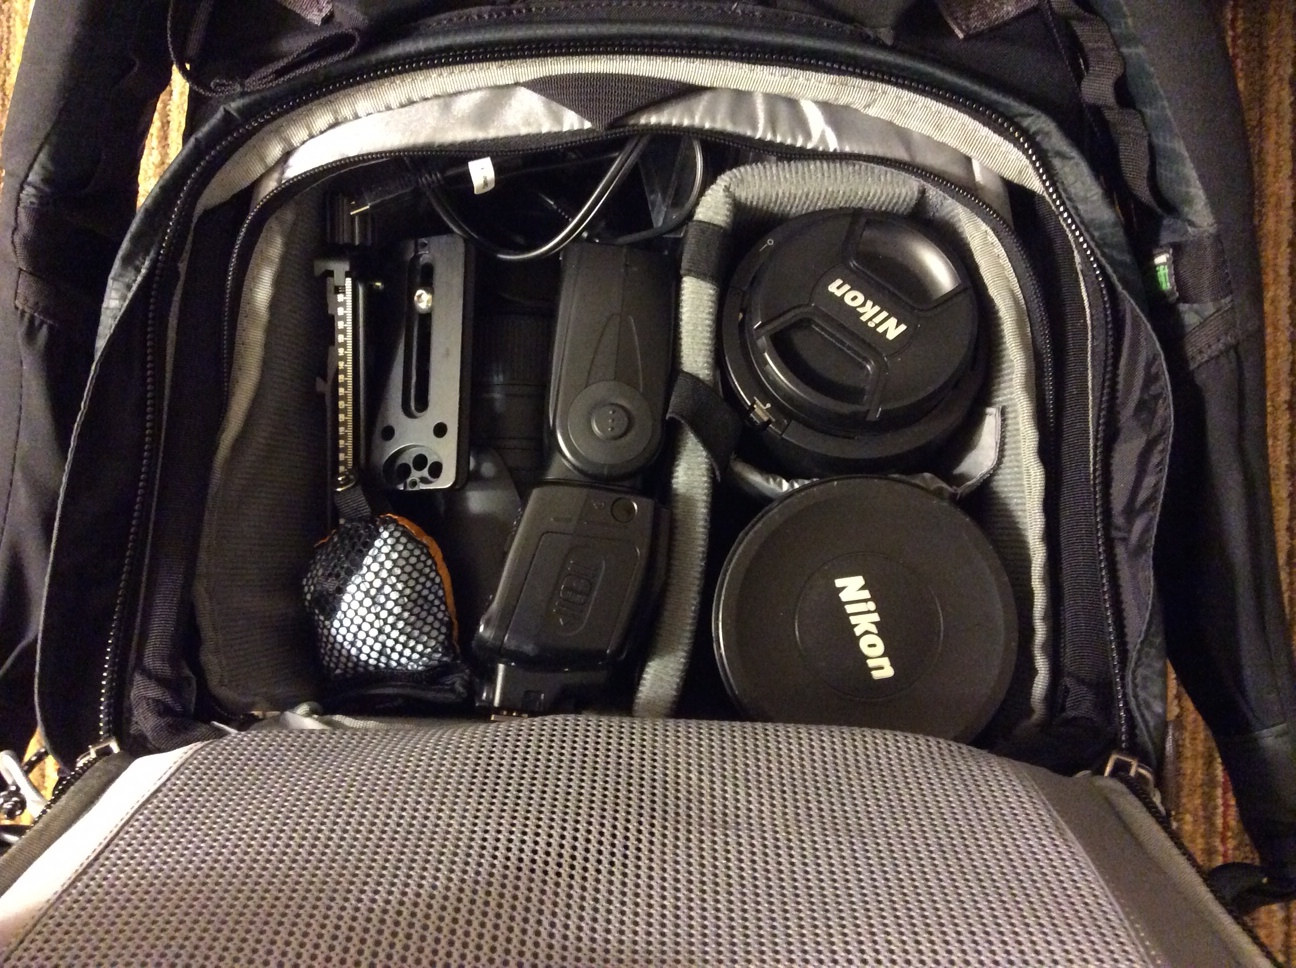 Inside the back compartmented of the Mindshift Gear Rotation 180 - I have jammed it full of gear! I would probably never hike with it like this since it's just jammed up, but this was the best way to transport all of the essentials, including lenses, flashes, camera bodies, chargers, filters, and more.